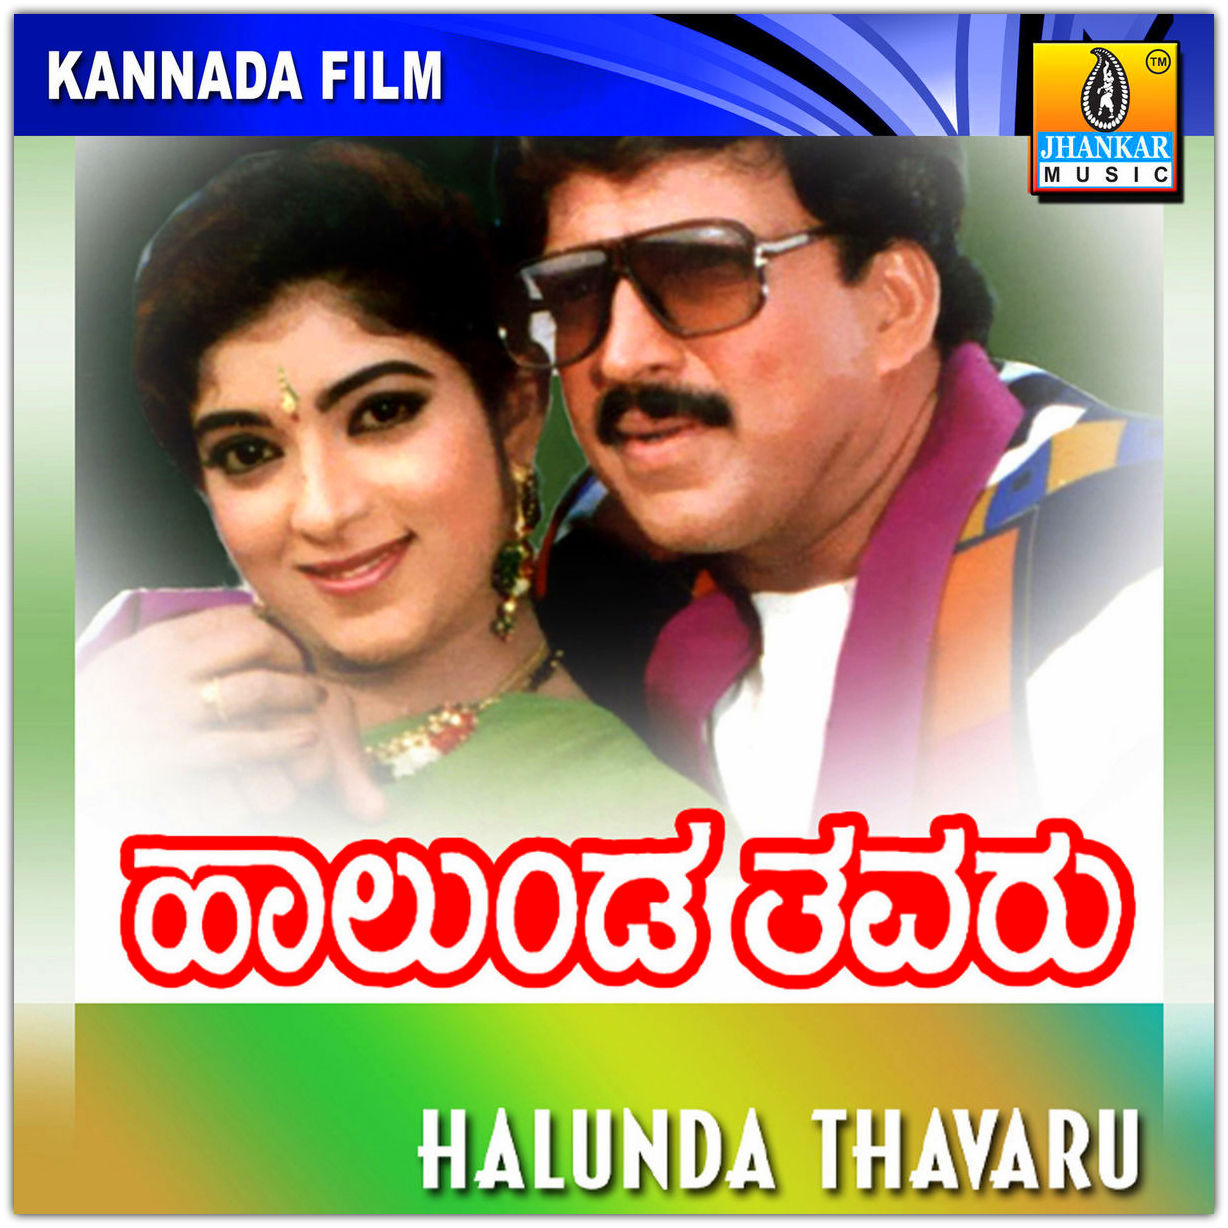 Download New Kannada MP3 Songs Online For Free